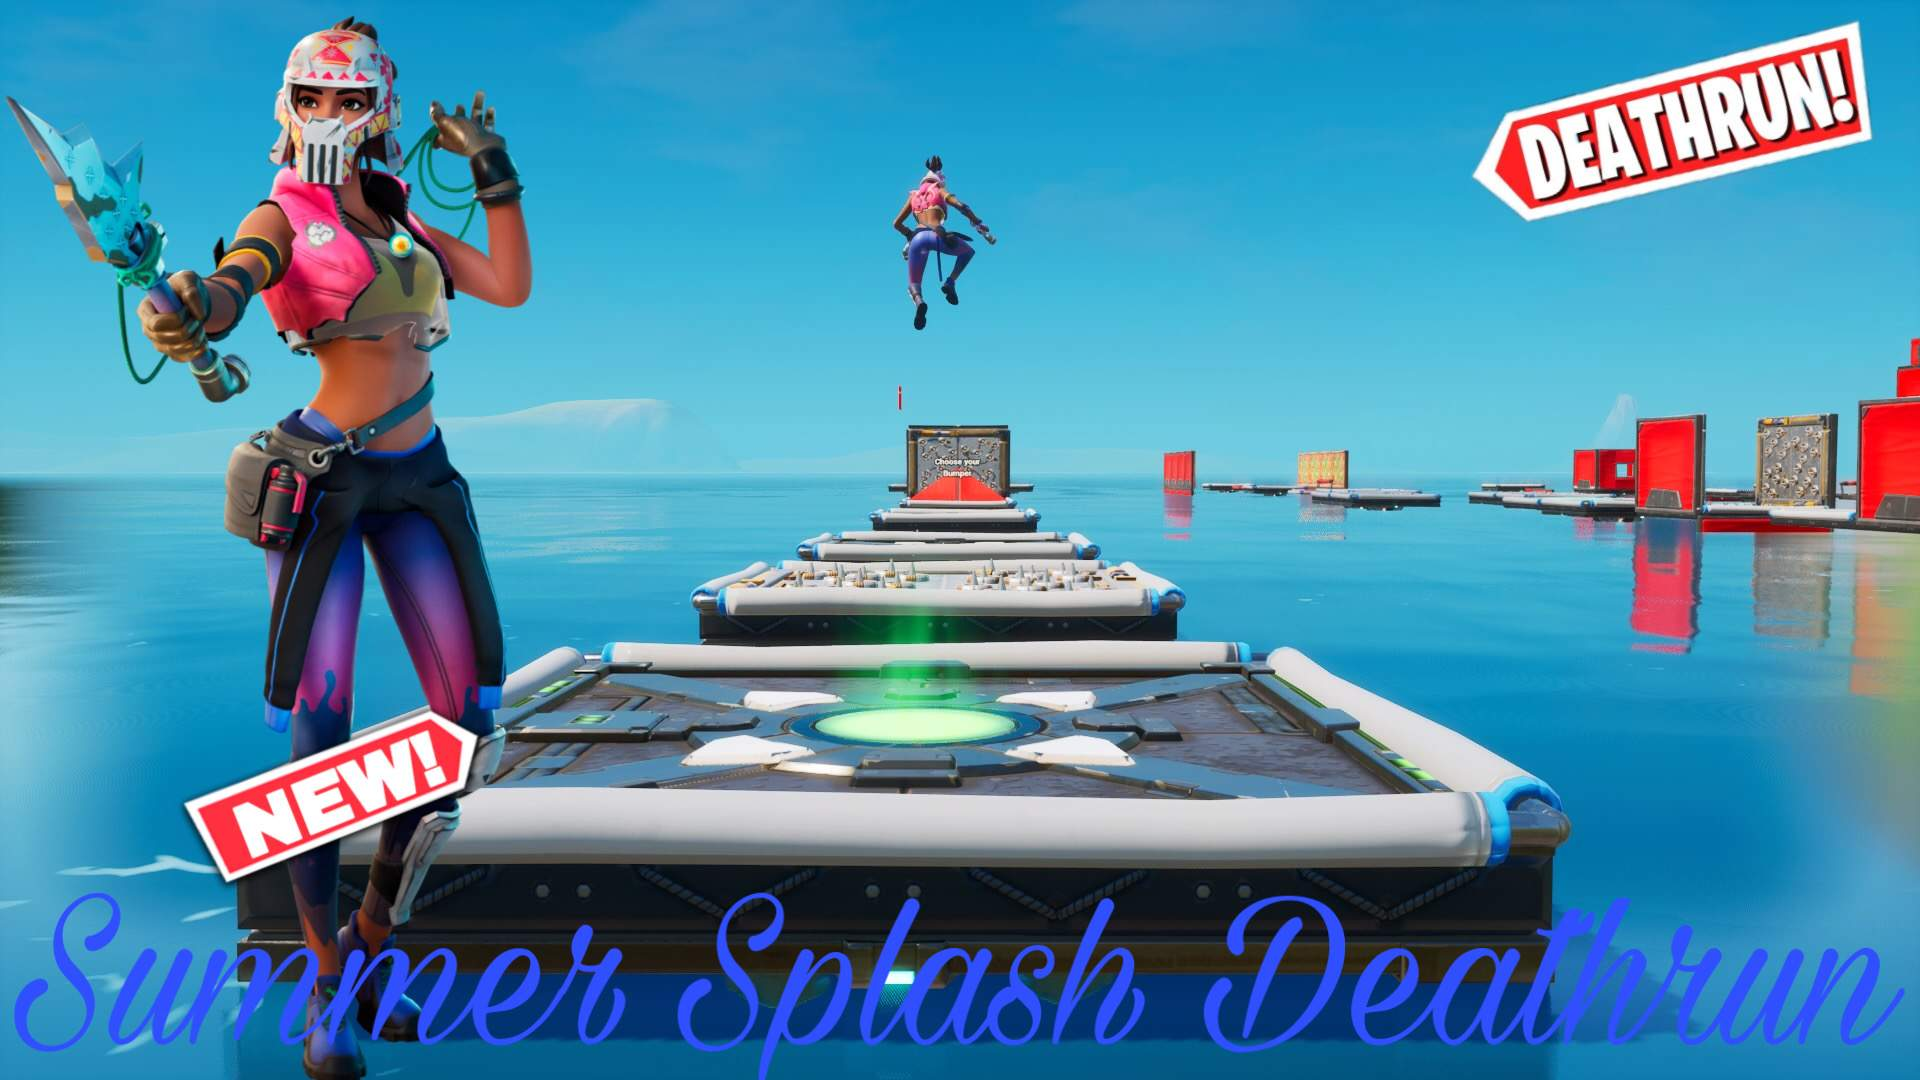 SUMMER SPLASH DEATHRUN